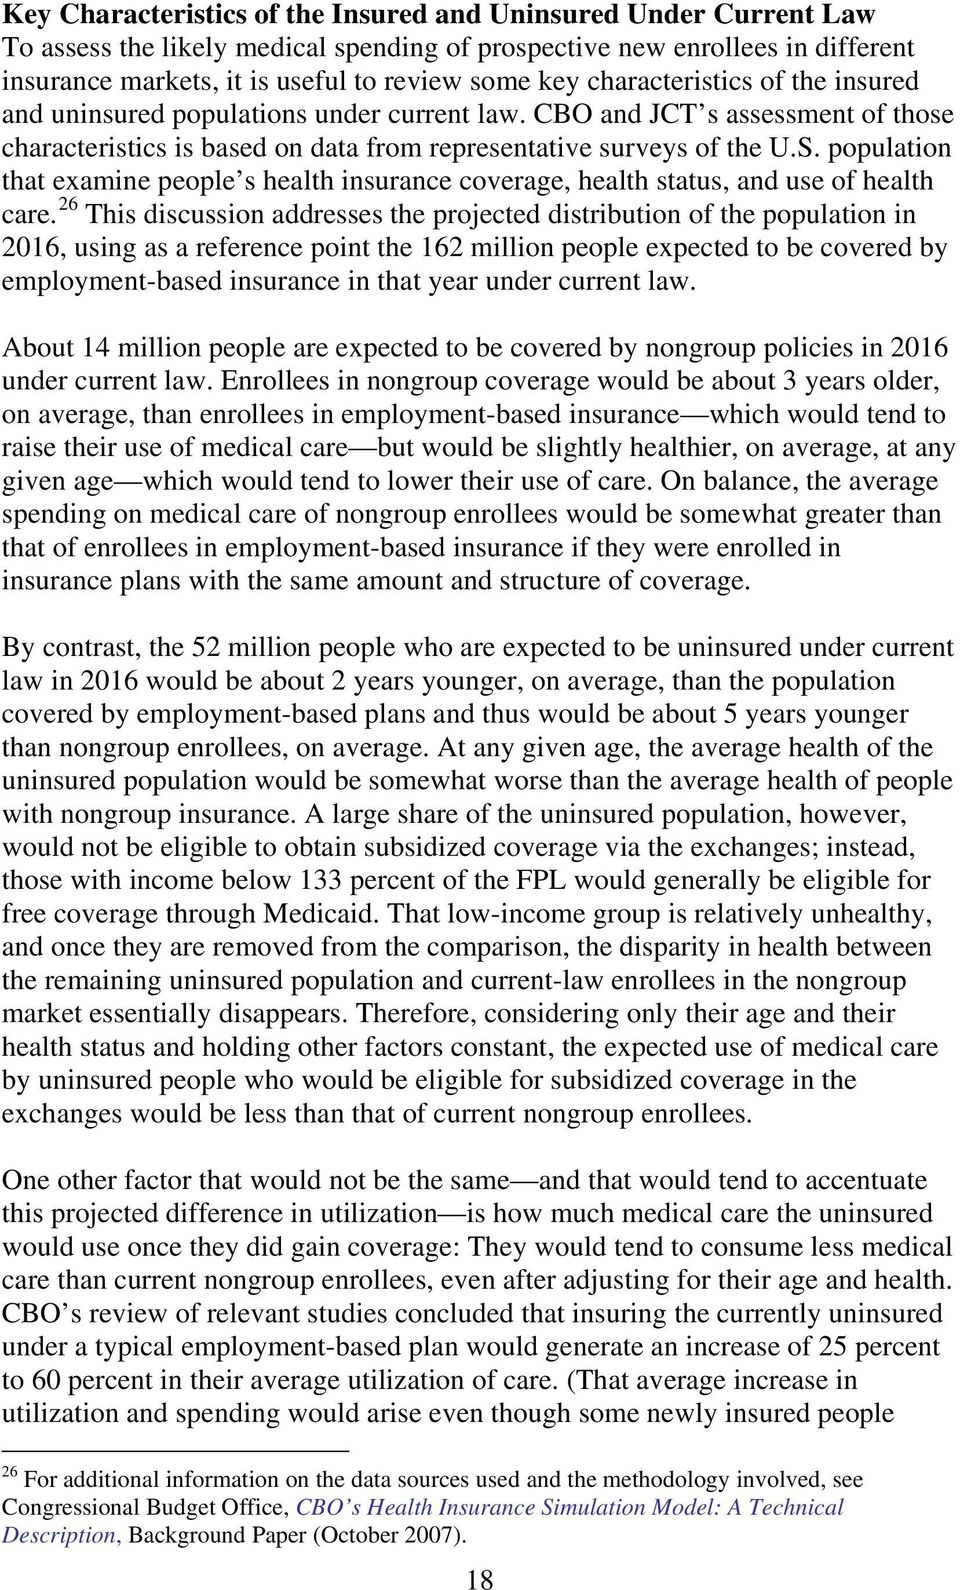 population that examine people s health insurance coverage, health status, and use of health care.